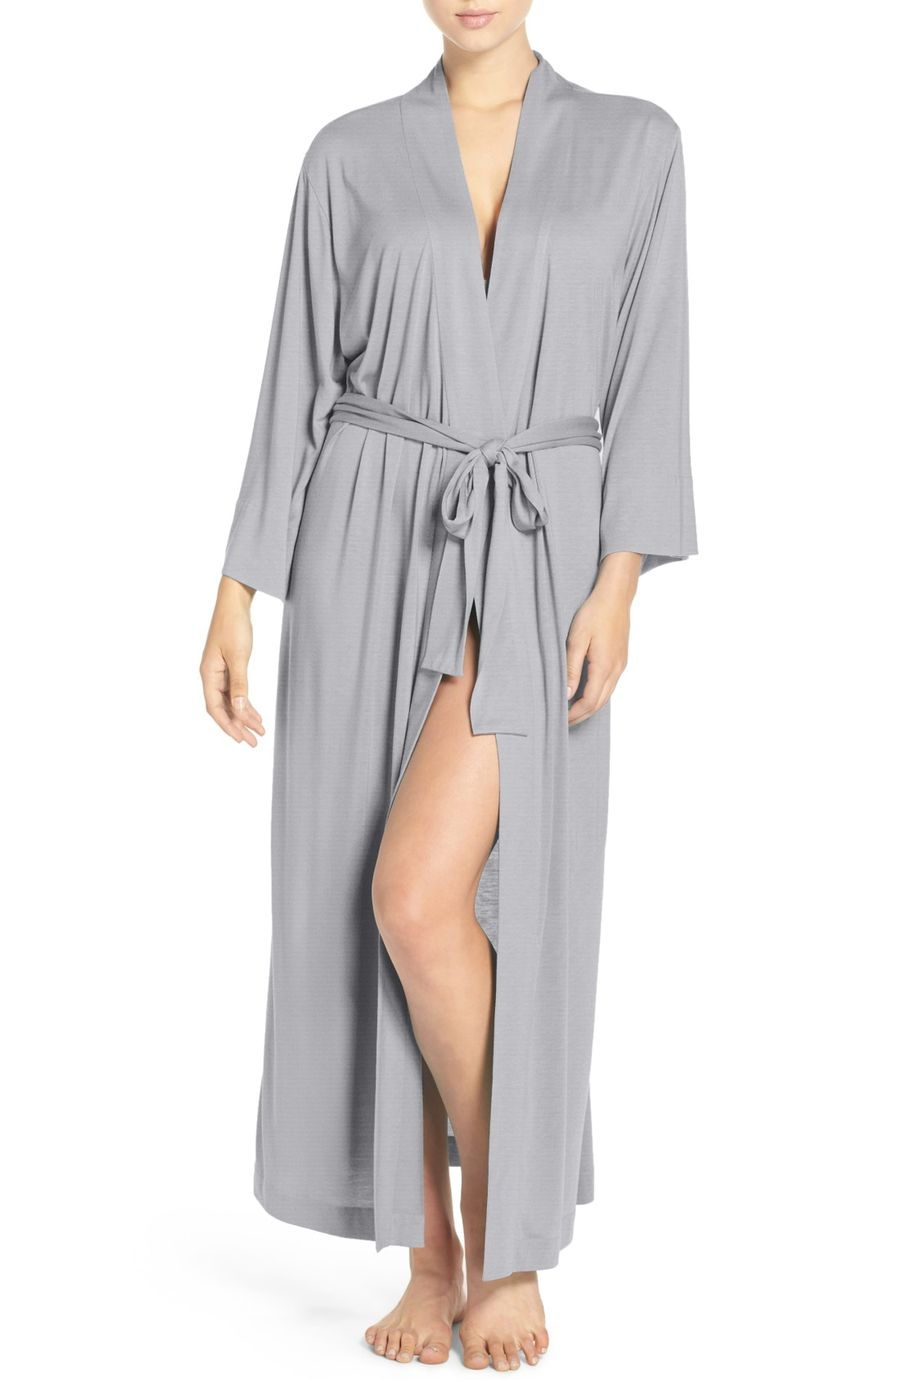 The 16 Best Robes For Women Of 2021